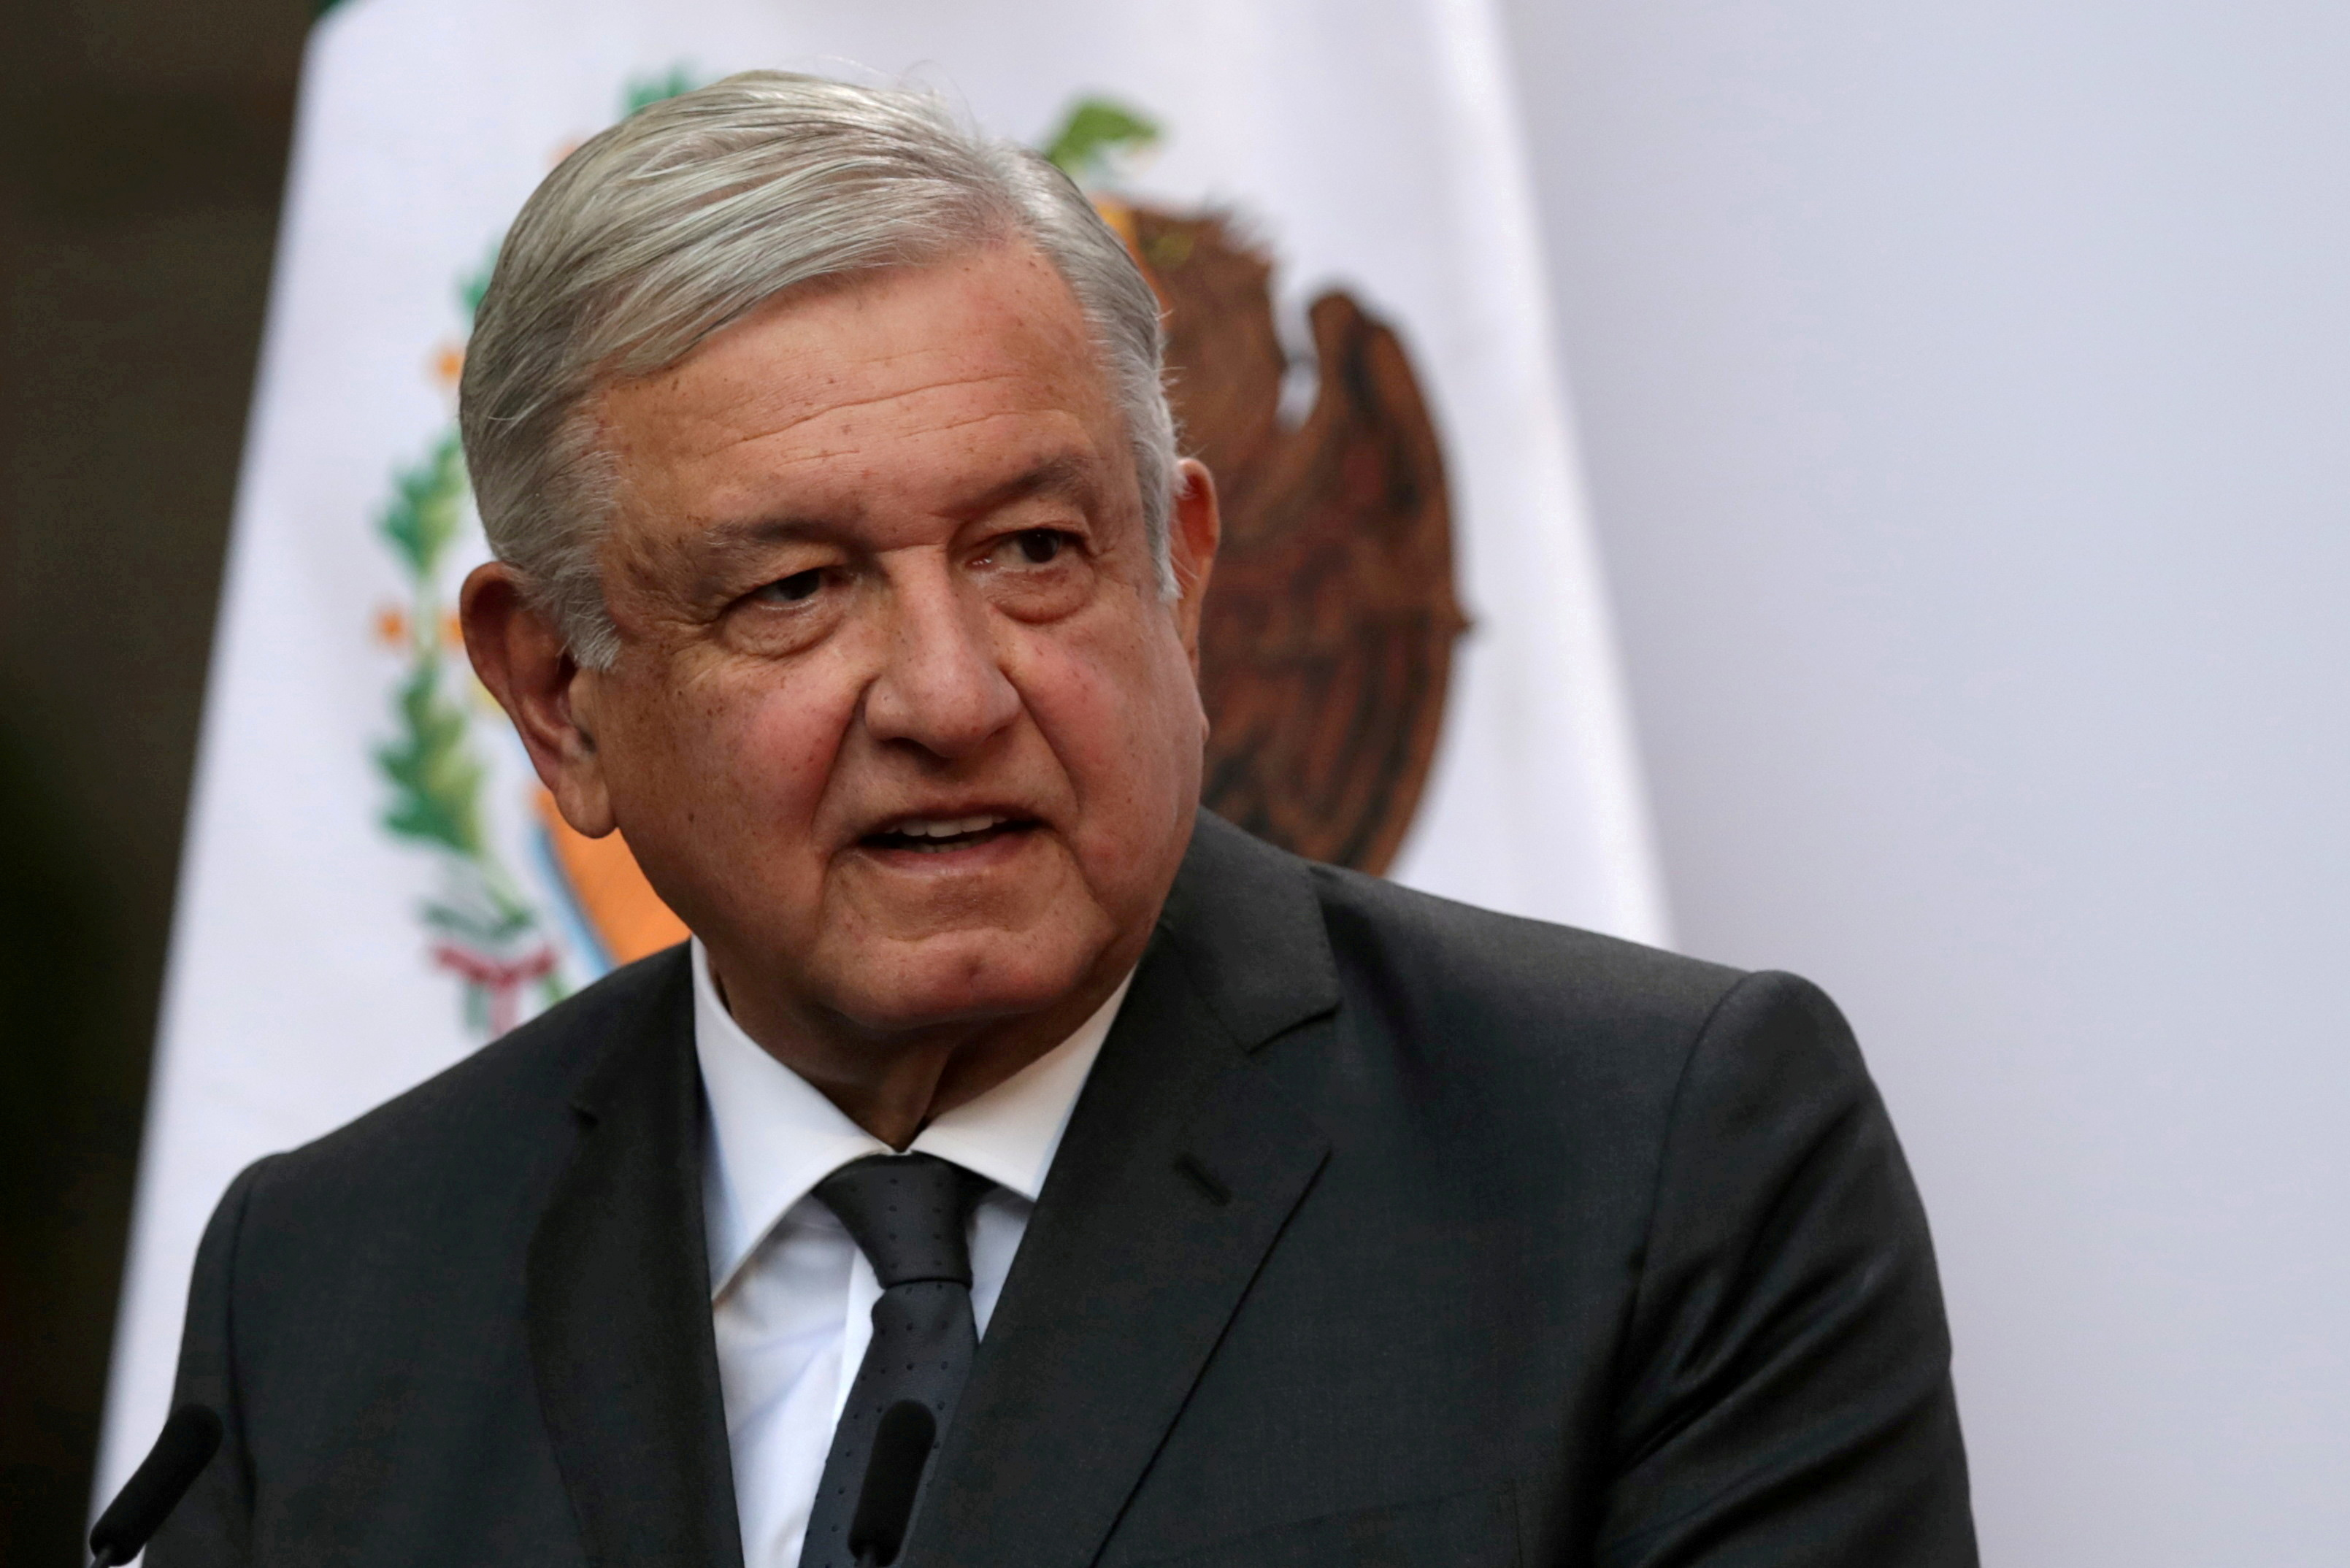 Mexico's President Andres Manuel Lopez Obrador addresses to the nation on his second anniversary as the President of Mexico, at the National Palace in Mexico City, Mexico, December 1, 2020.  REUTERS/Henry Romero/File Photo